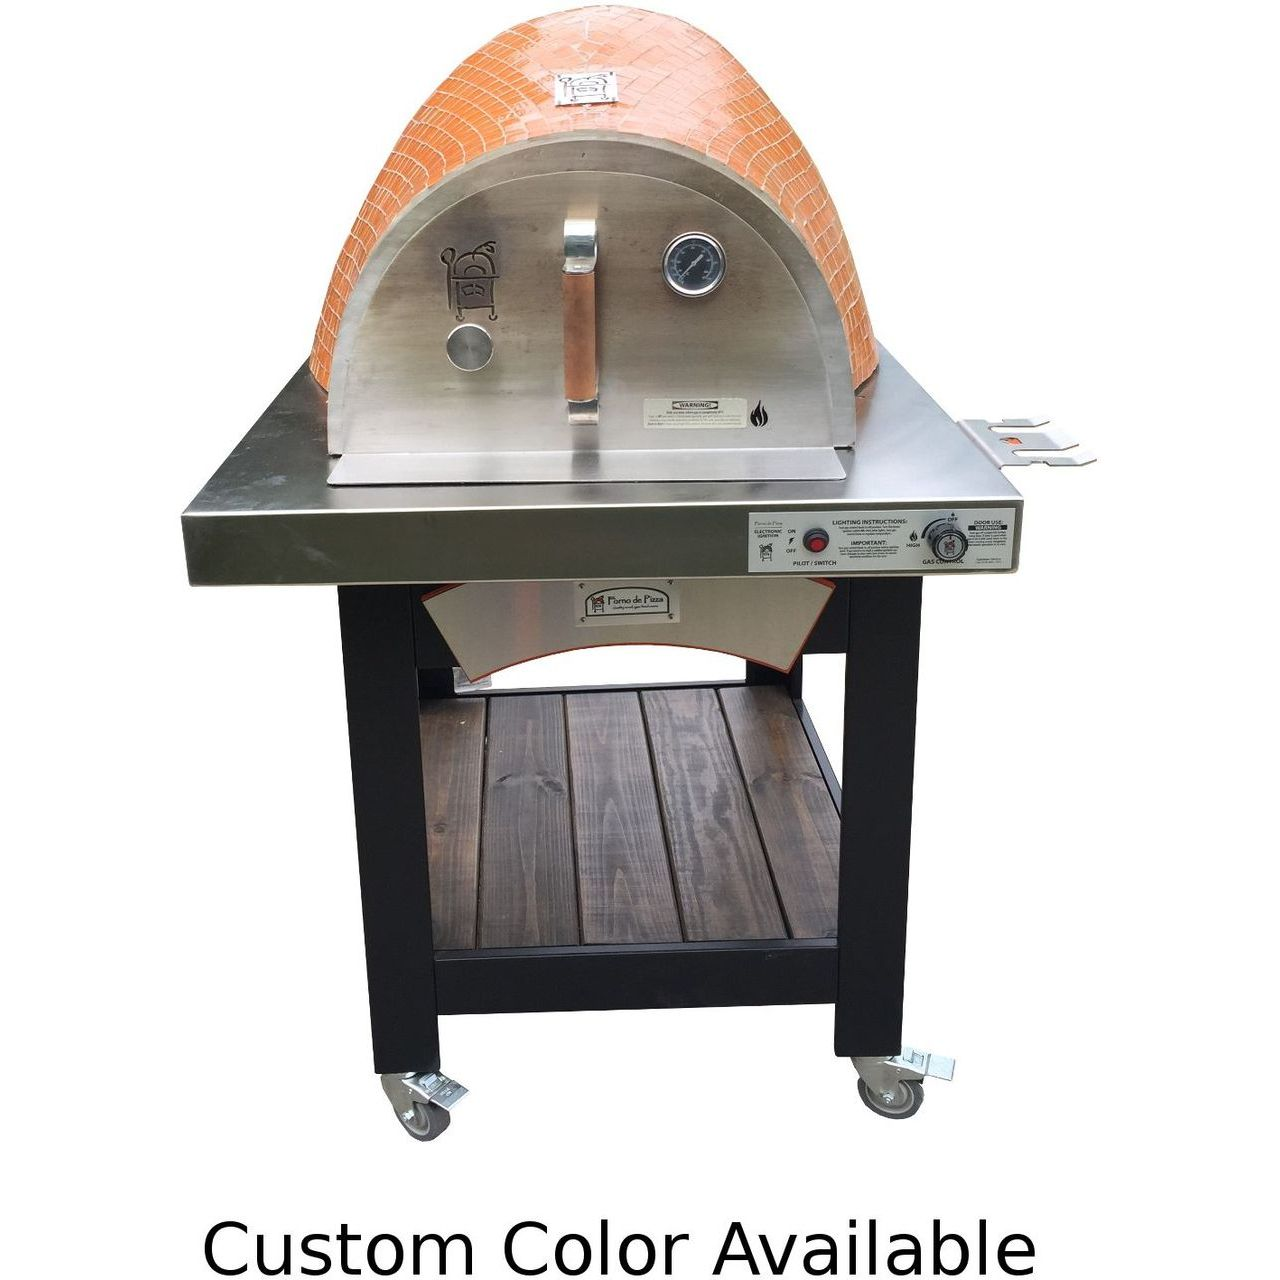 HPC Forno Hybrid Gas/Wood Oven With EI & Cart in Custom Color - NG